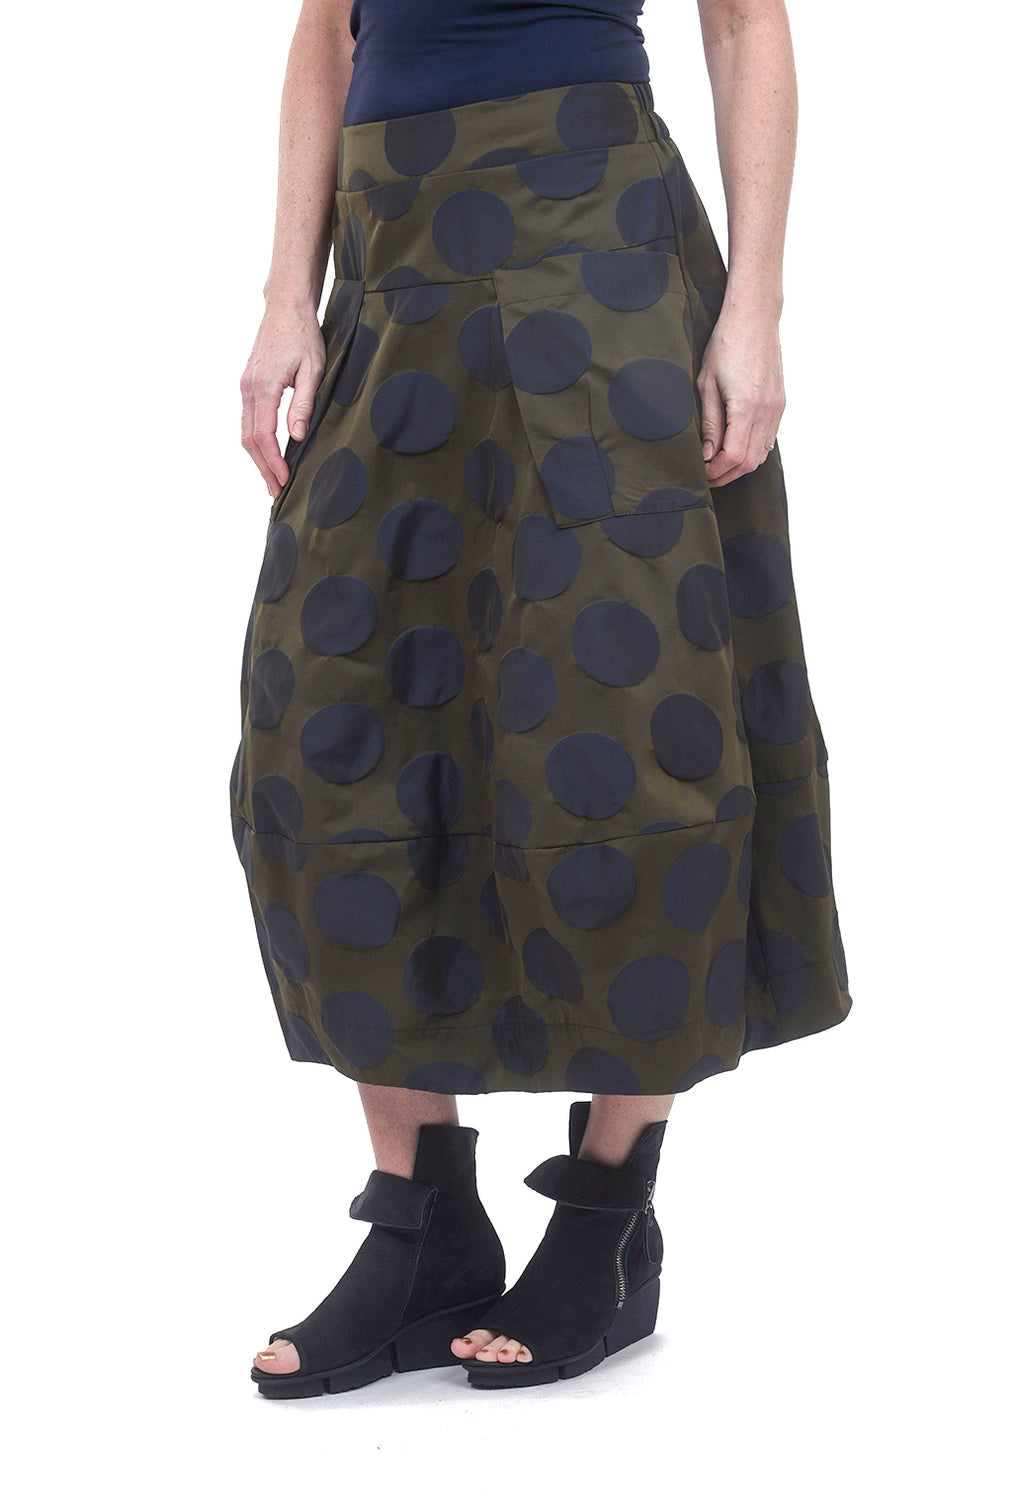 Sun Kim Midtown Skirt, Olive/Navy Dot